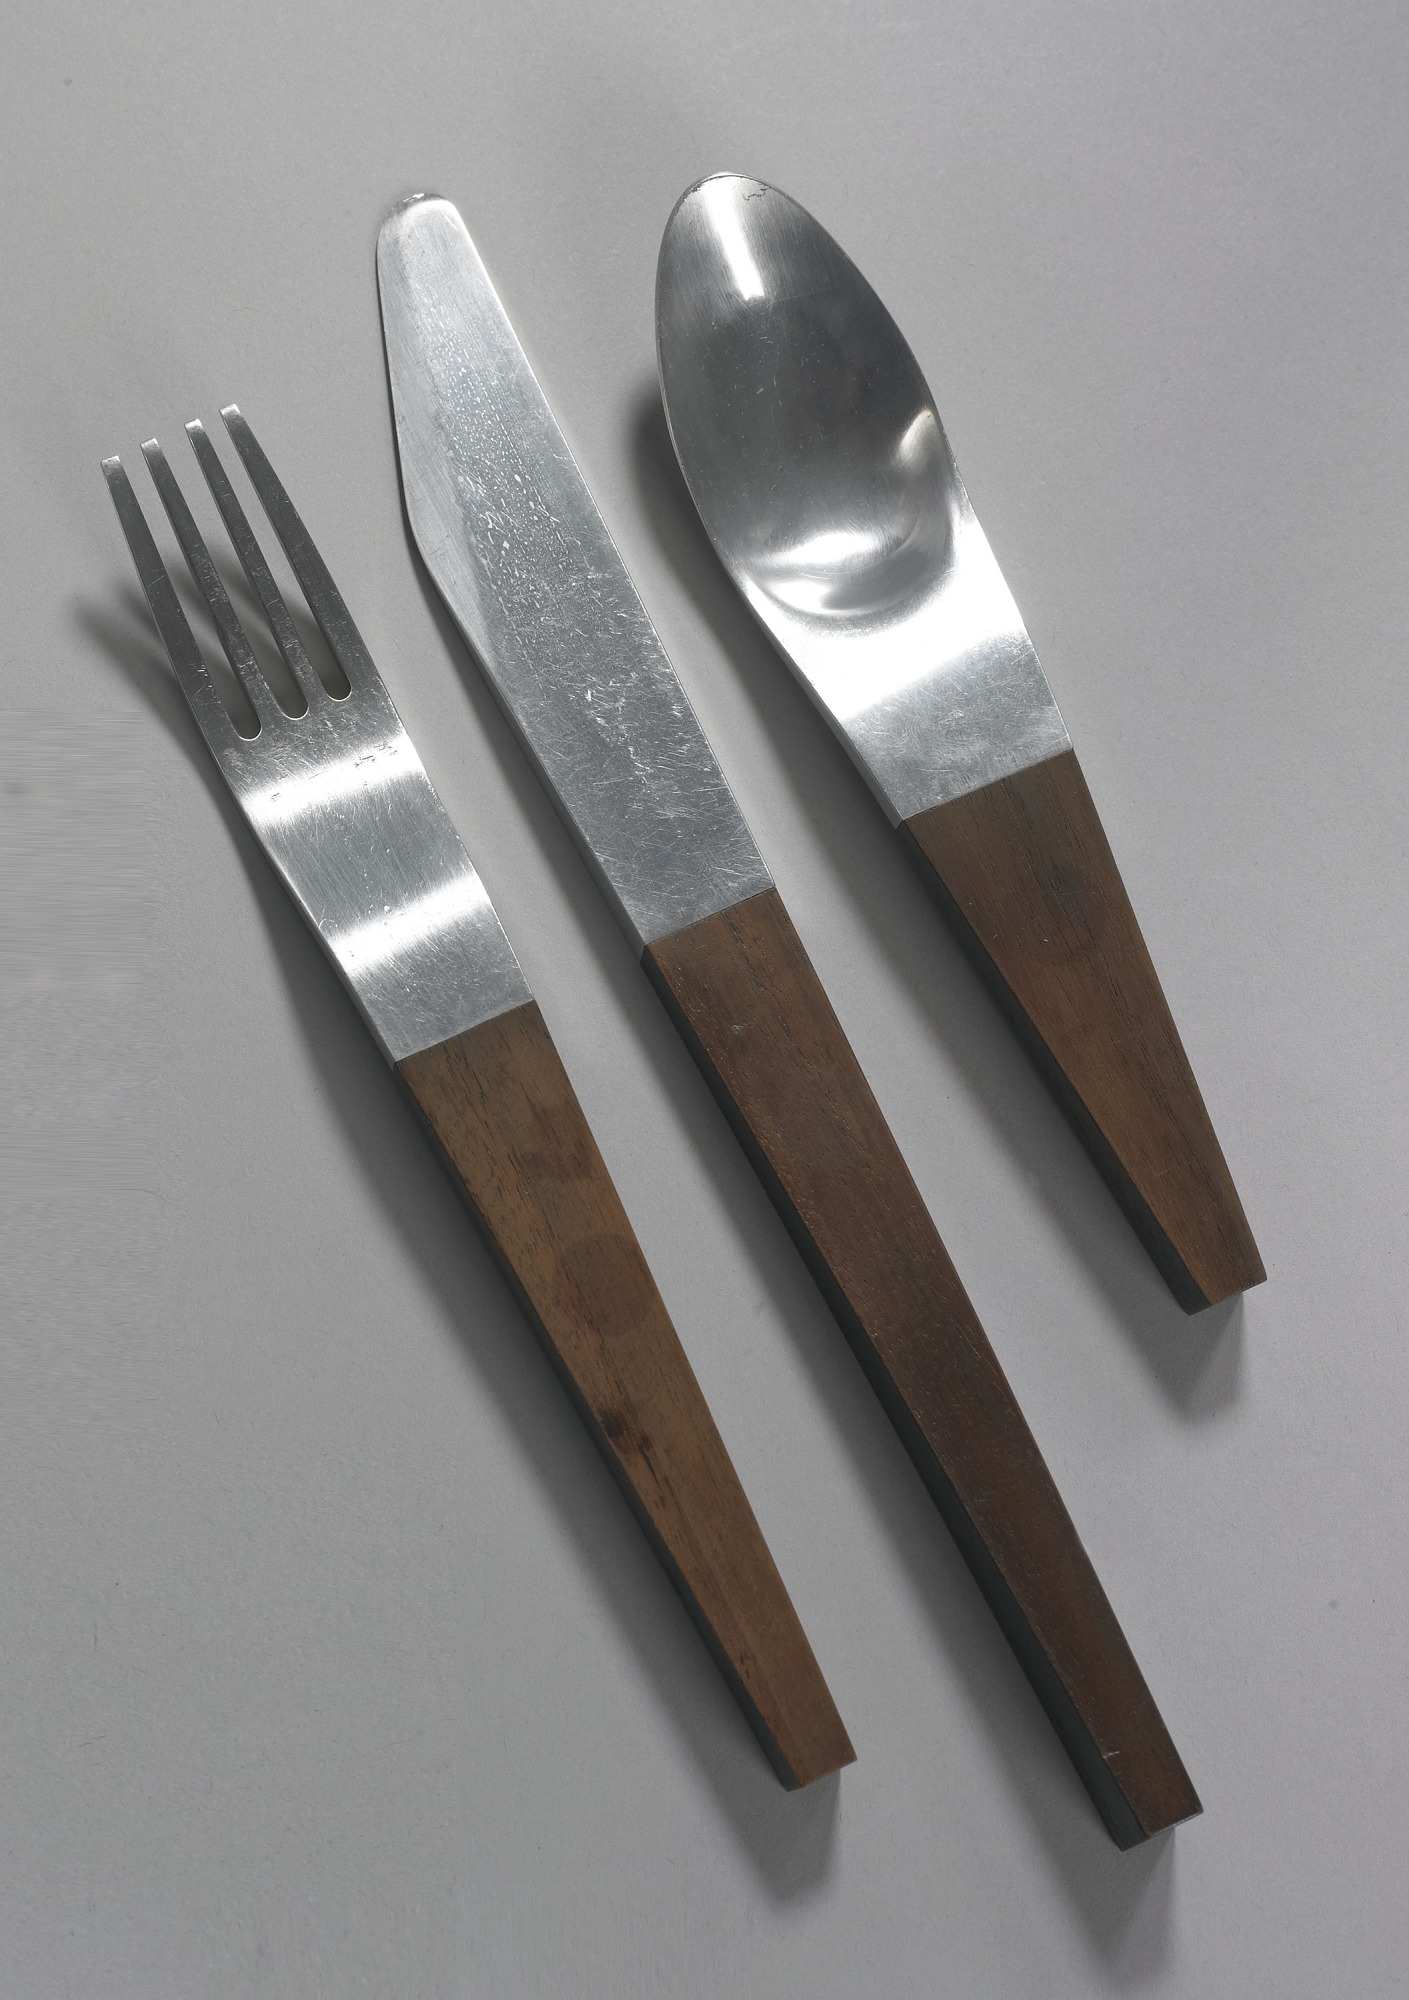 images for Prototype fork, knife and spoon